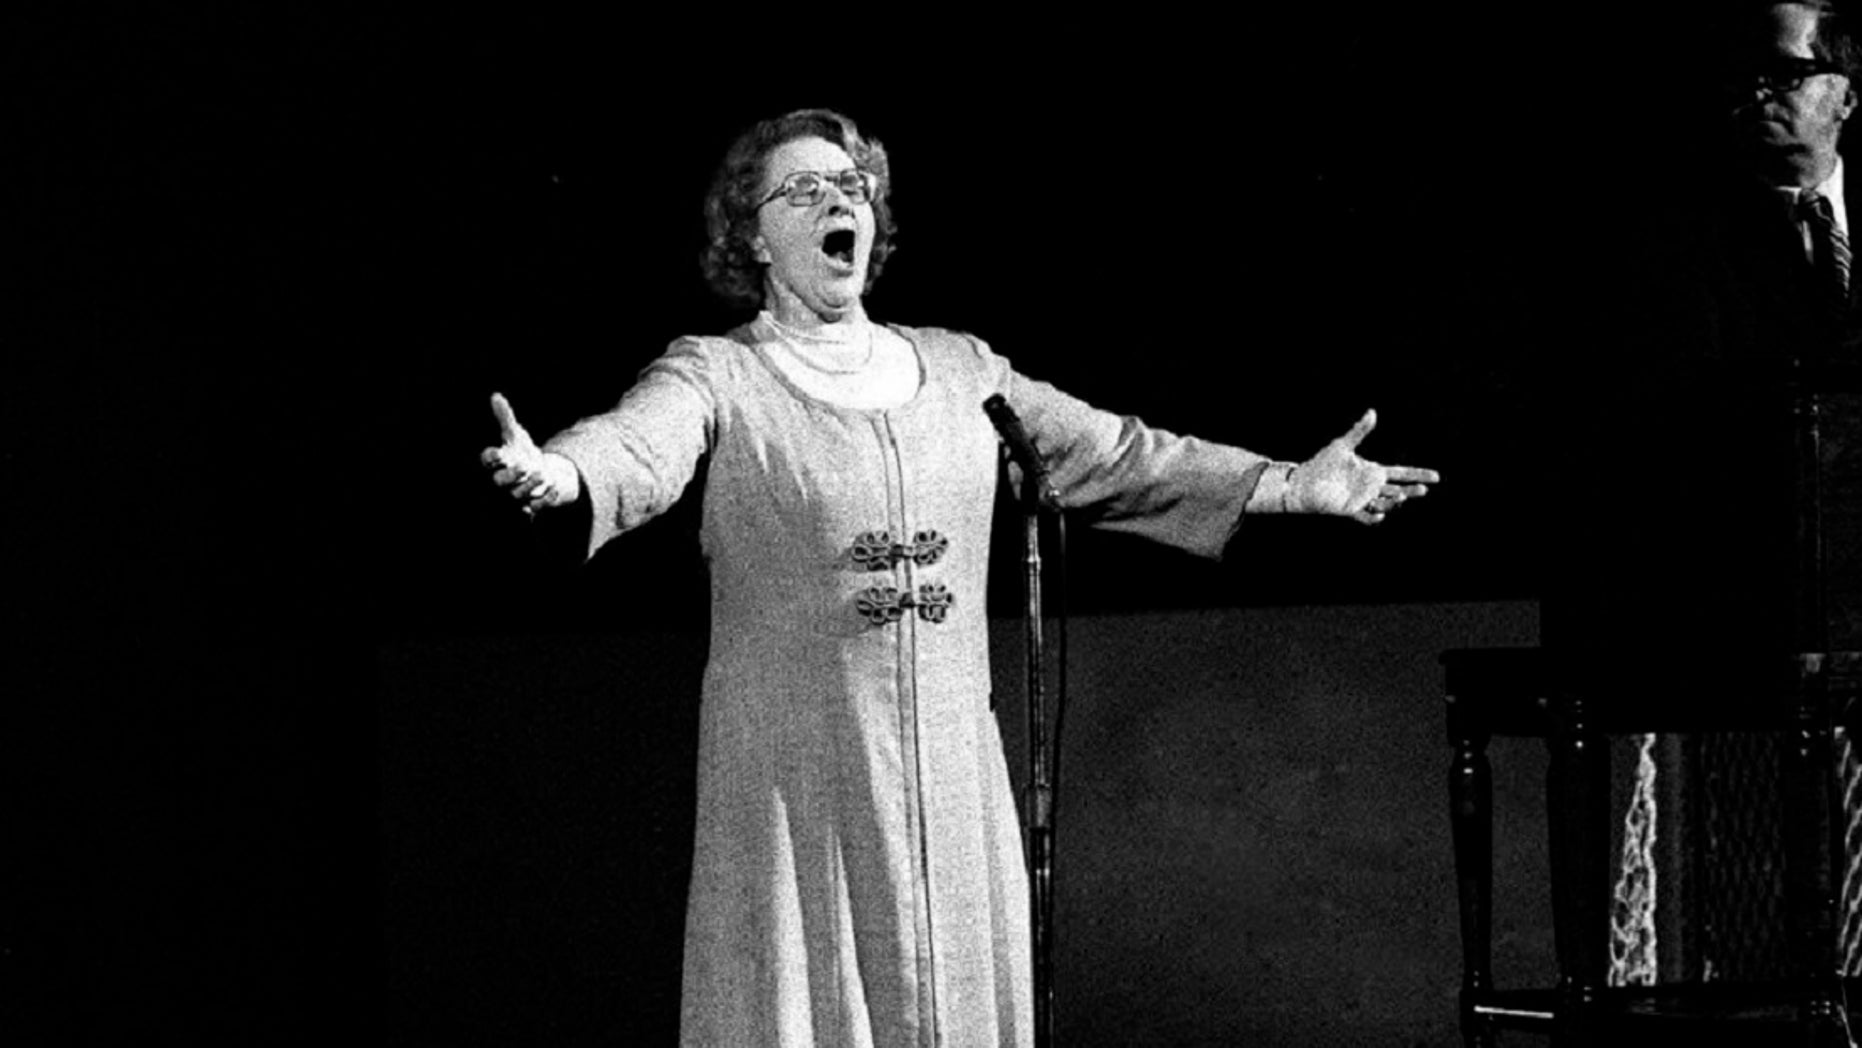 The New York Yankees have discontinued the use of Kate Smith's recording of